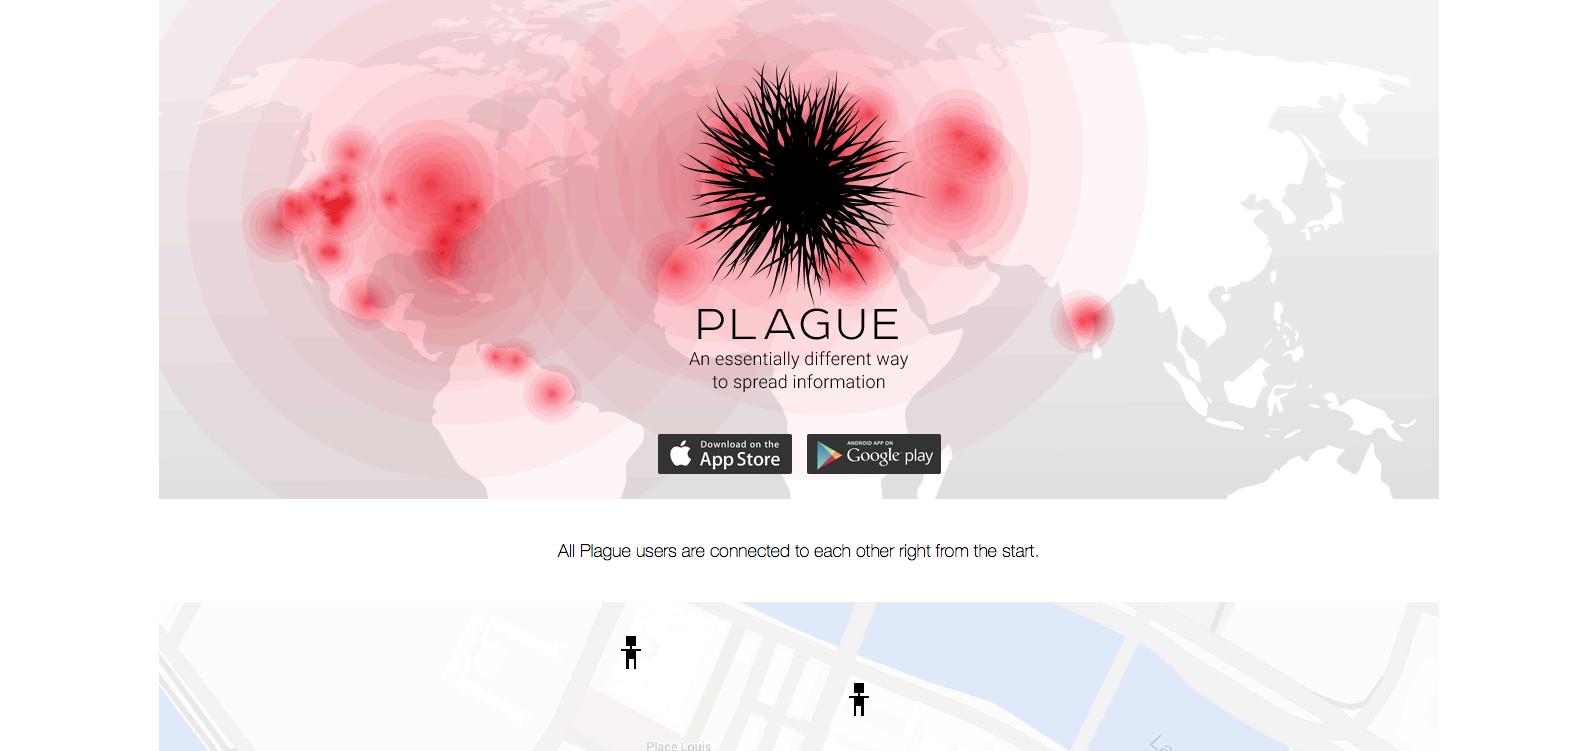 plague a new addictive social media app sfw. Black Bedroom Furniture Sets. Home Design Ideas